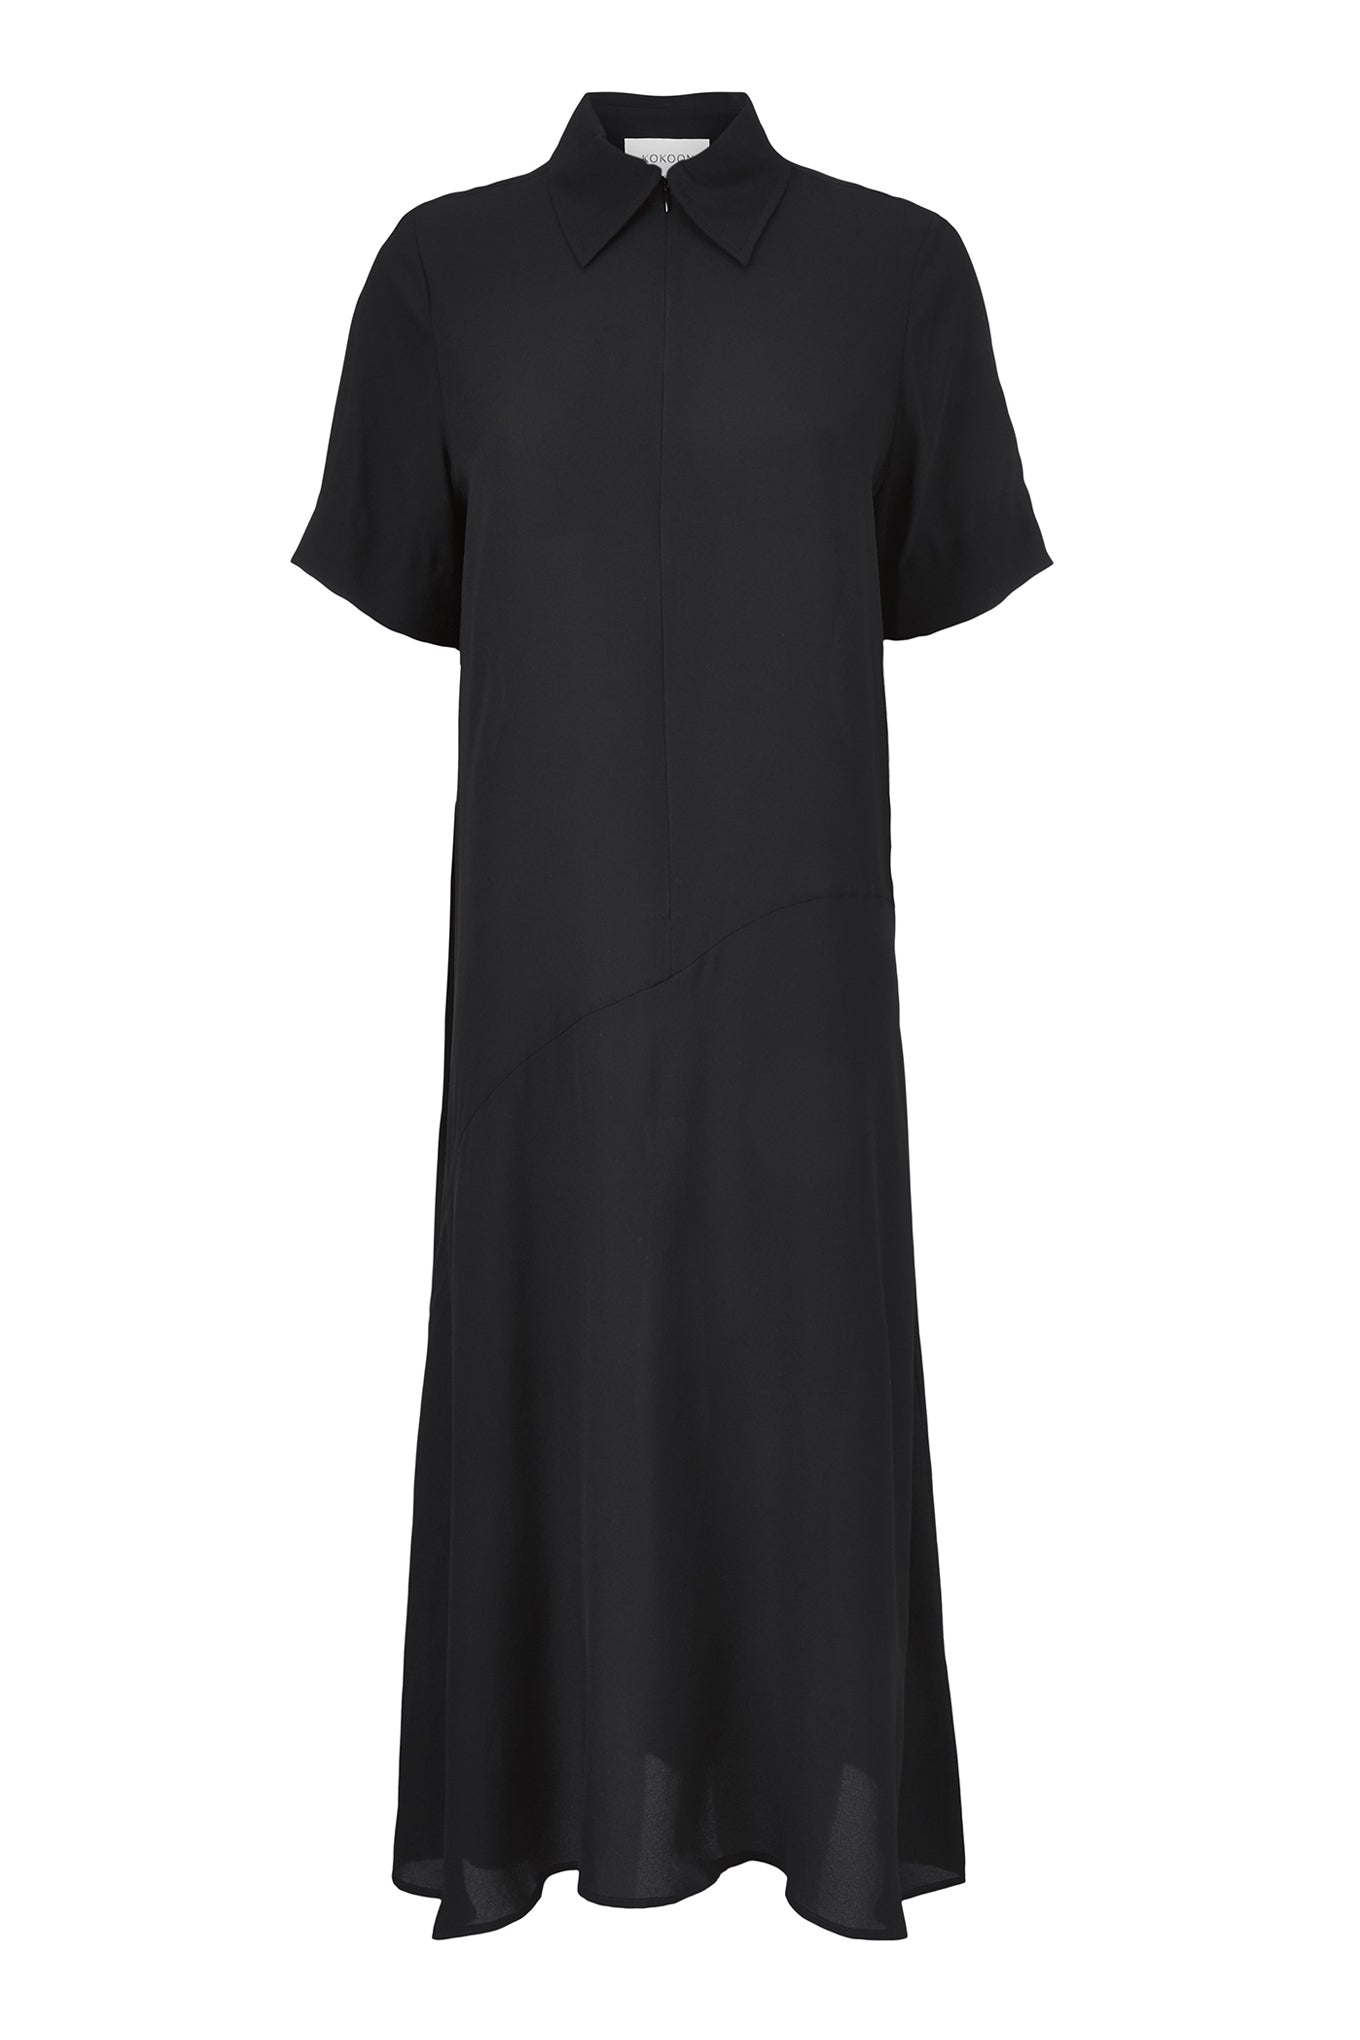 JODY DRESS - BLACK